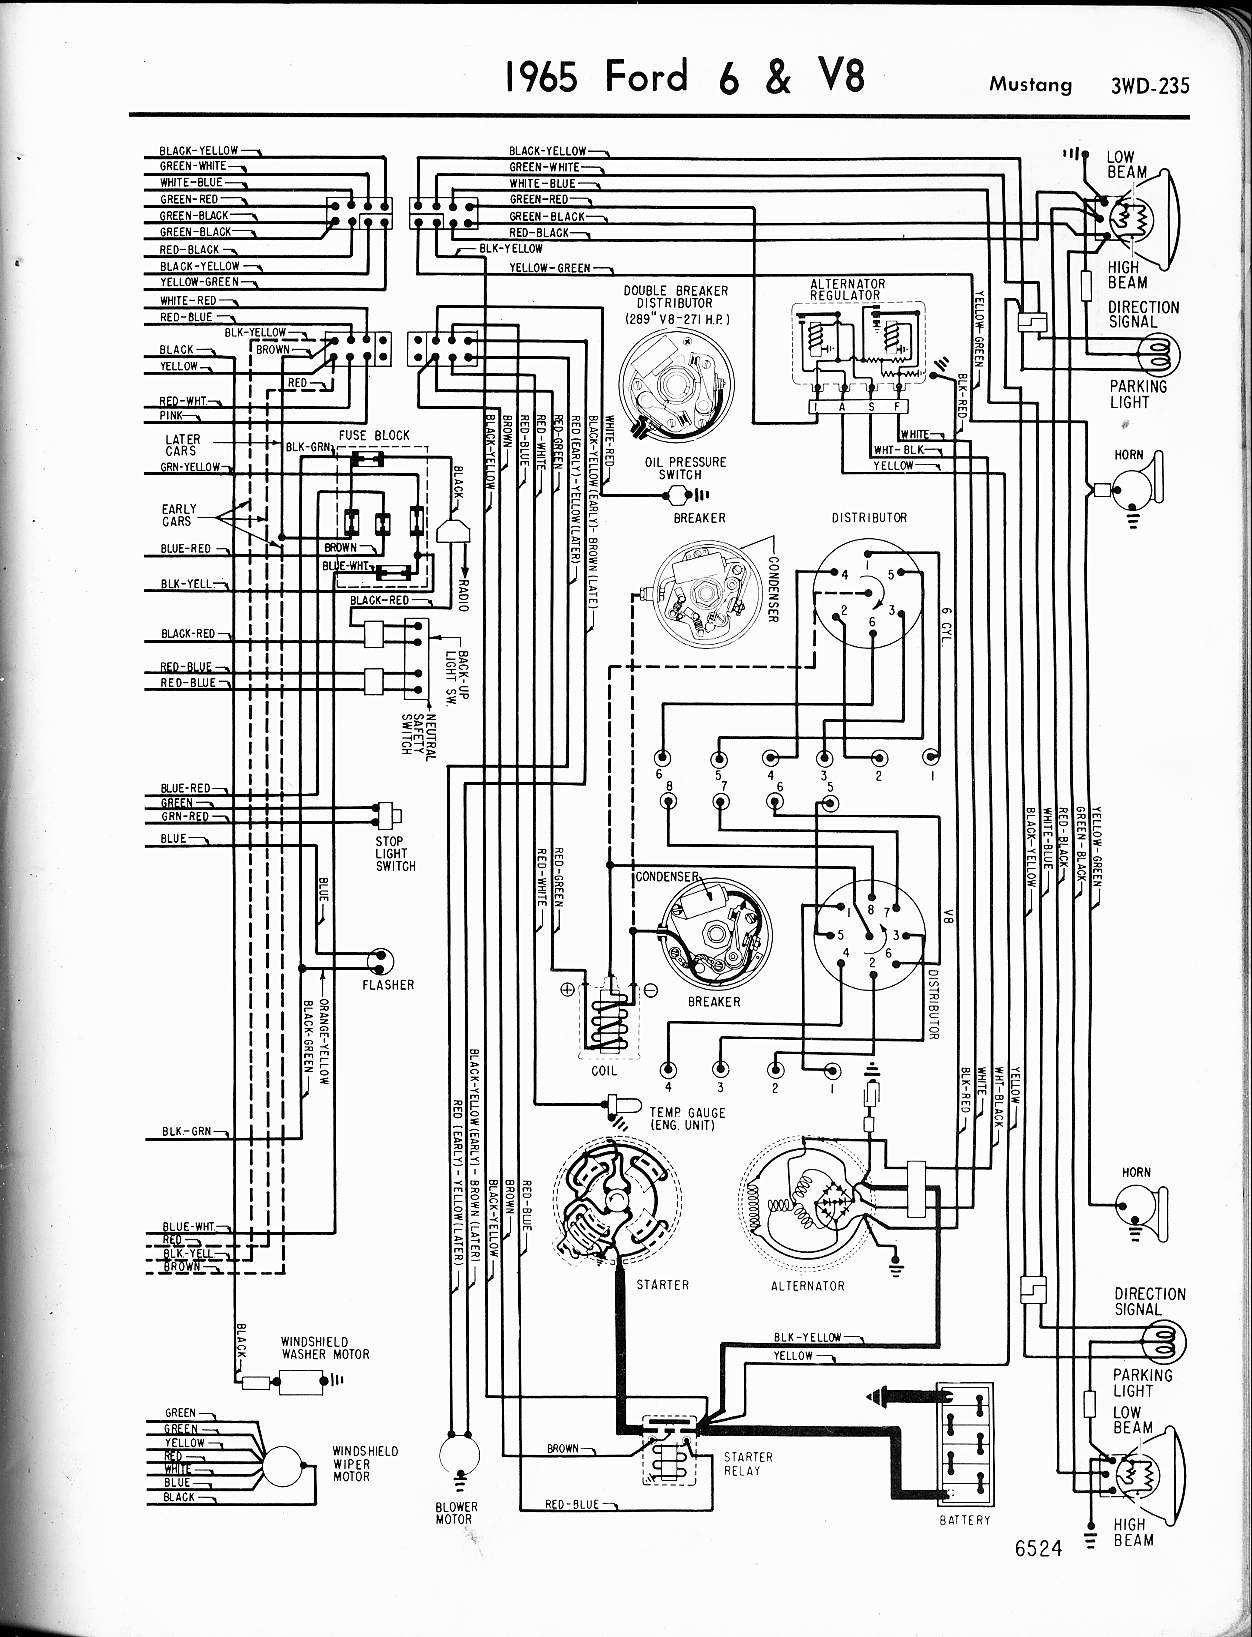 1965_mustang_wiring_2 ford diagrams 1965 Mustang Restoration Guide at n-0.co